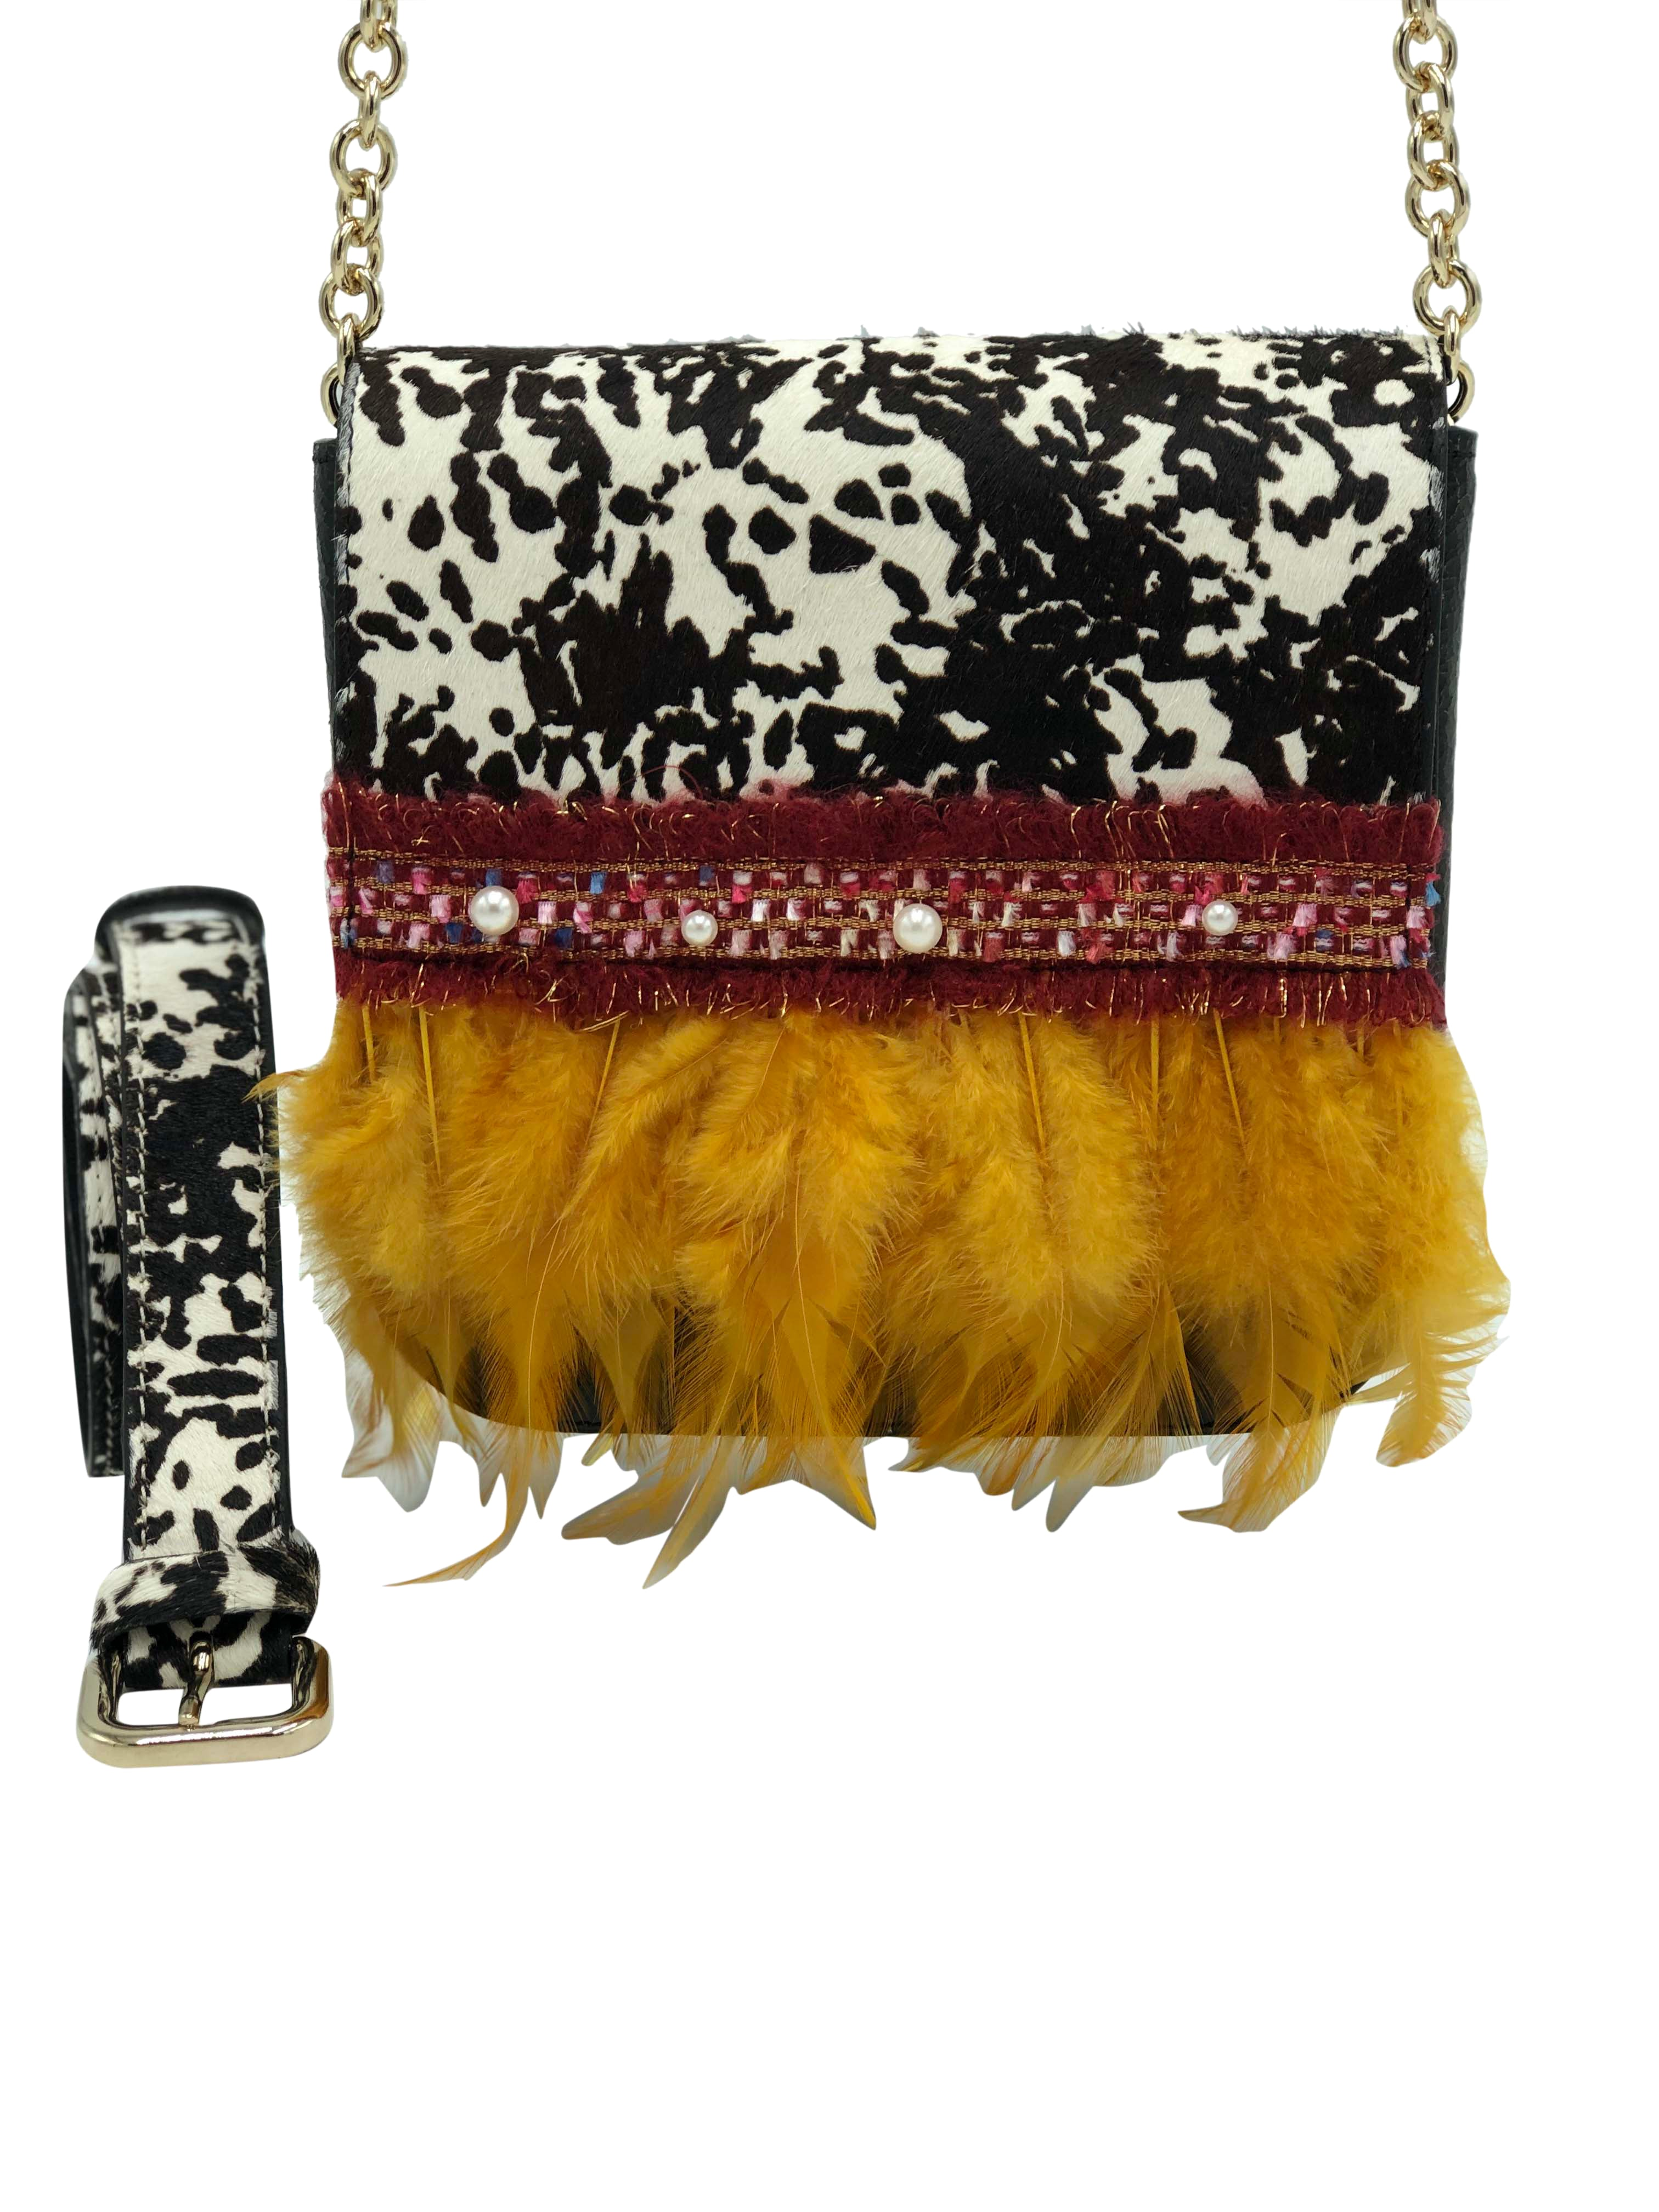 Black and white haircalf bag with feathers